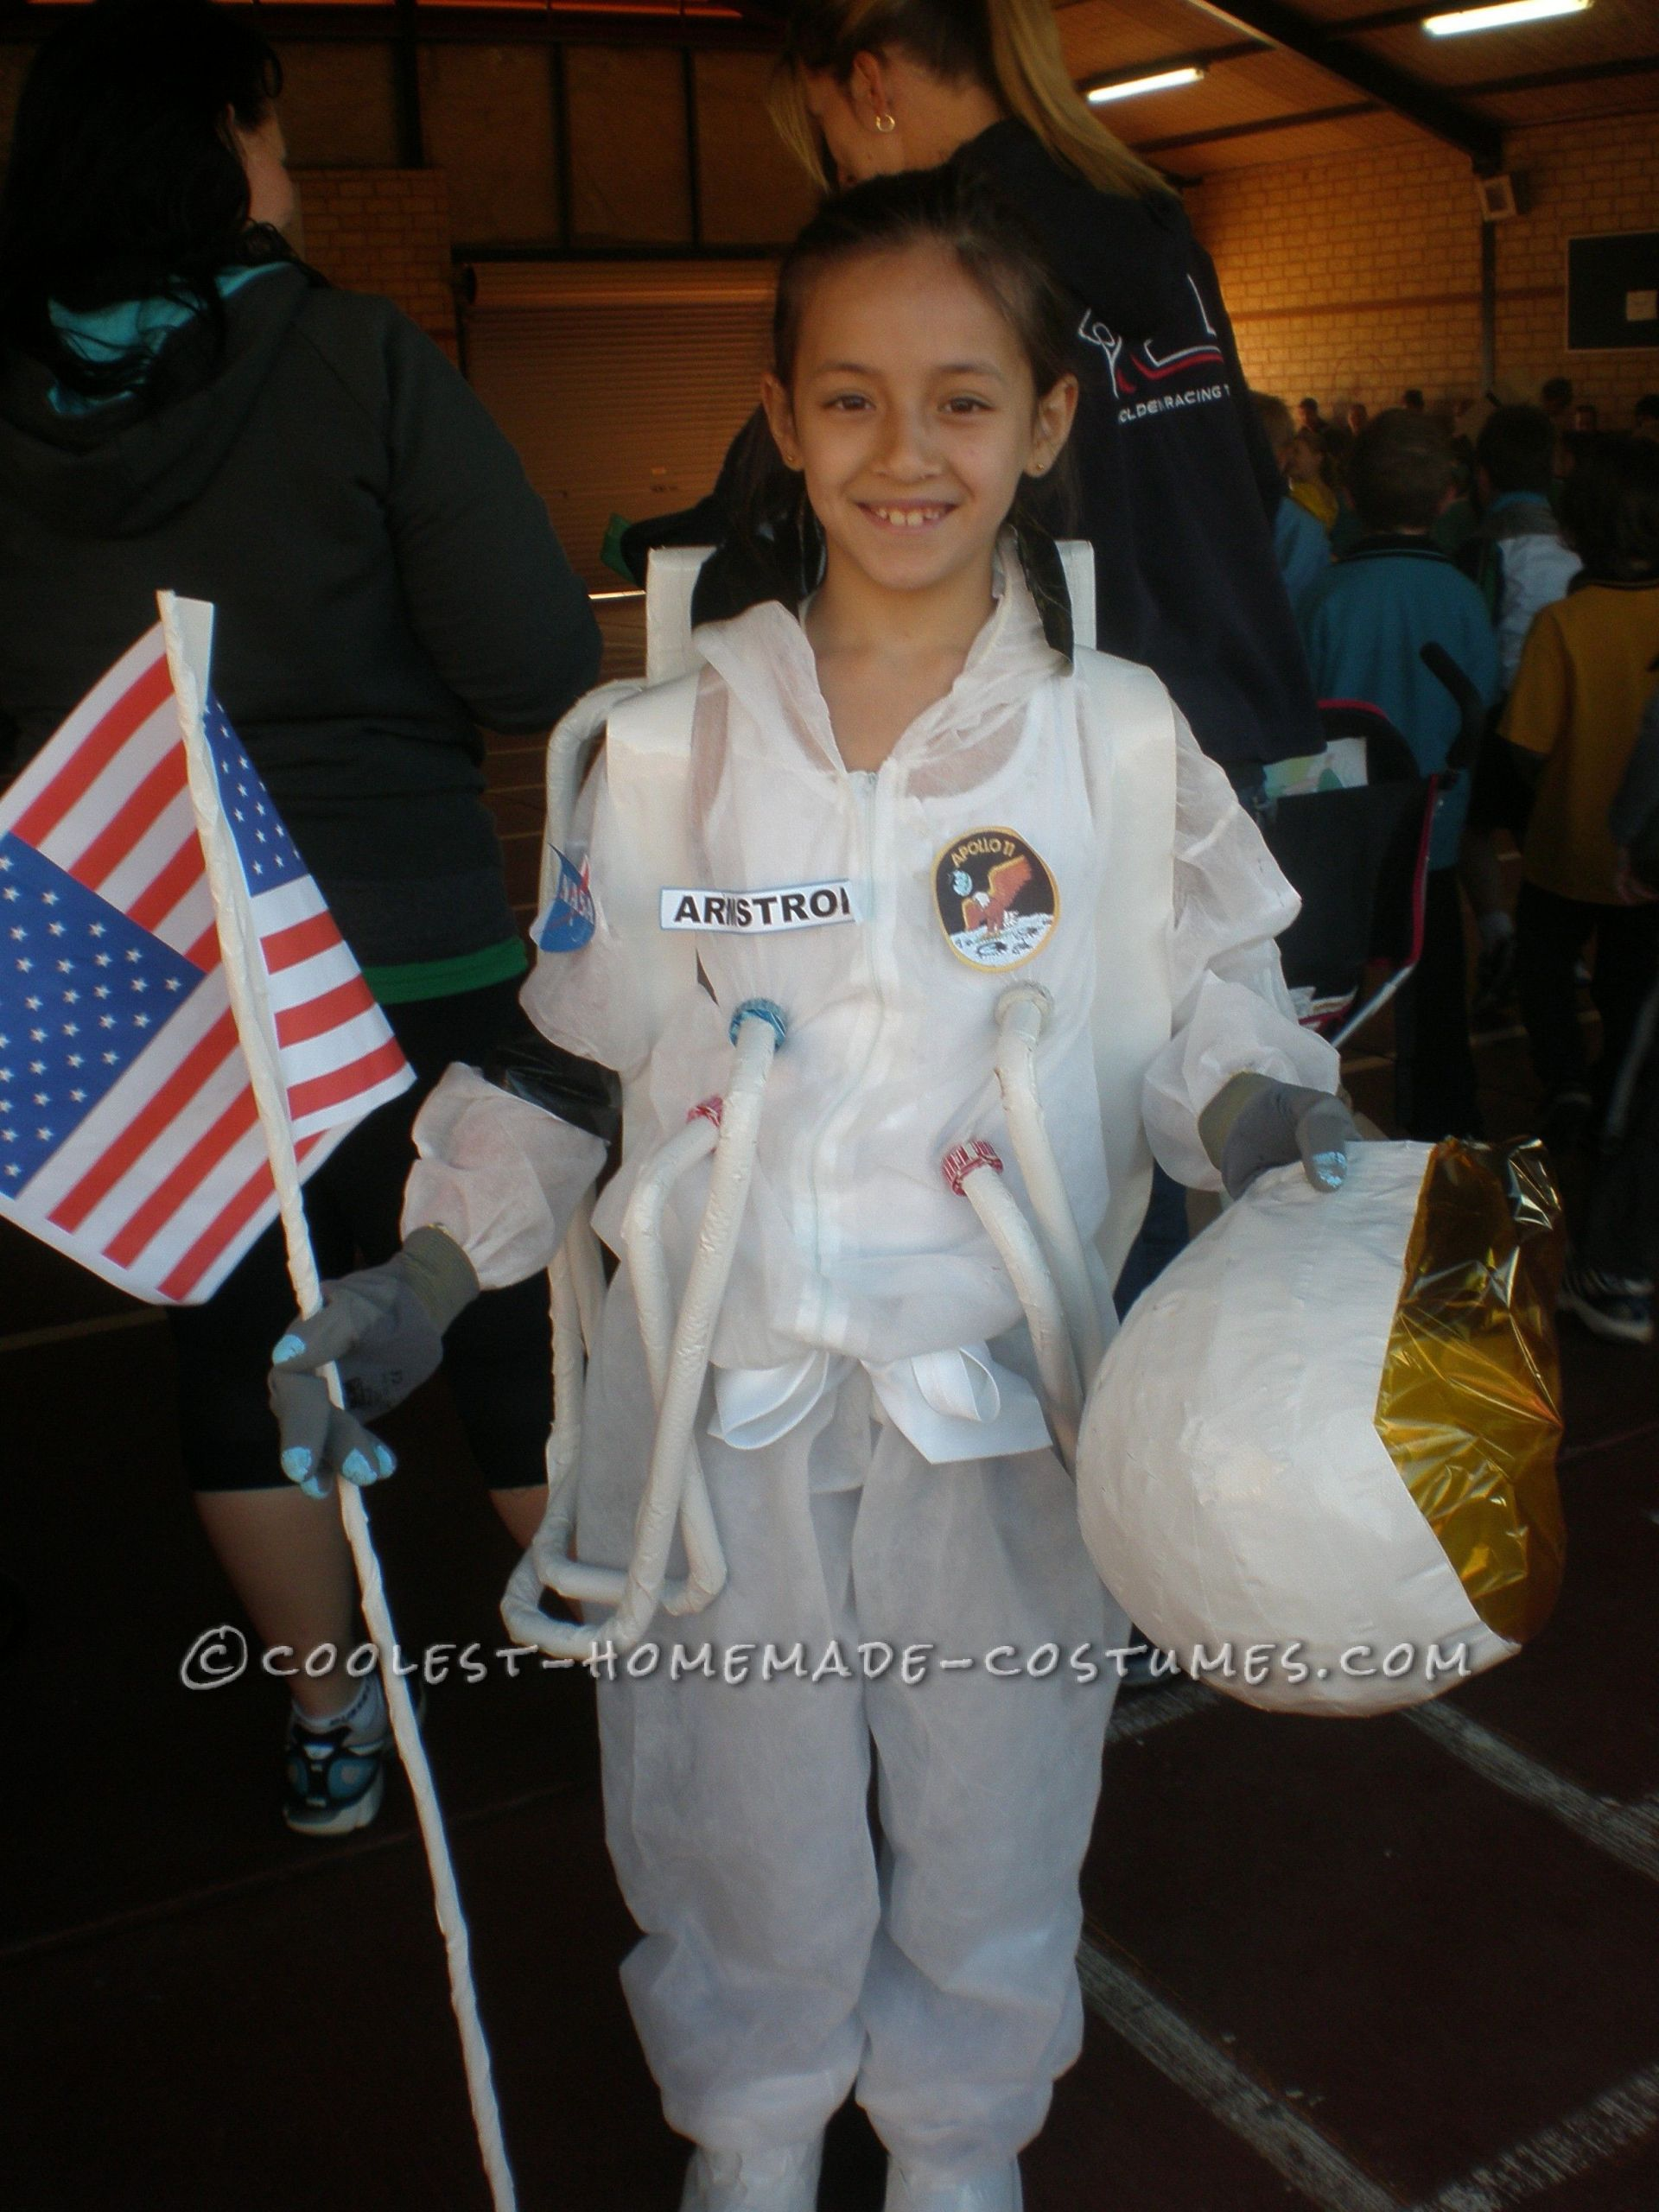 DIY Kids Astronaut Costume  Homemade Astronaut Costume in Honor of Neil Armstrong